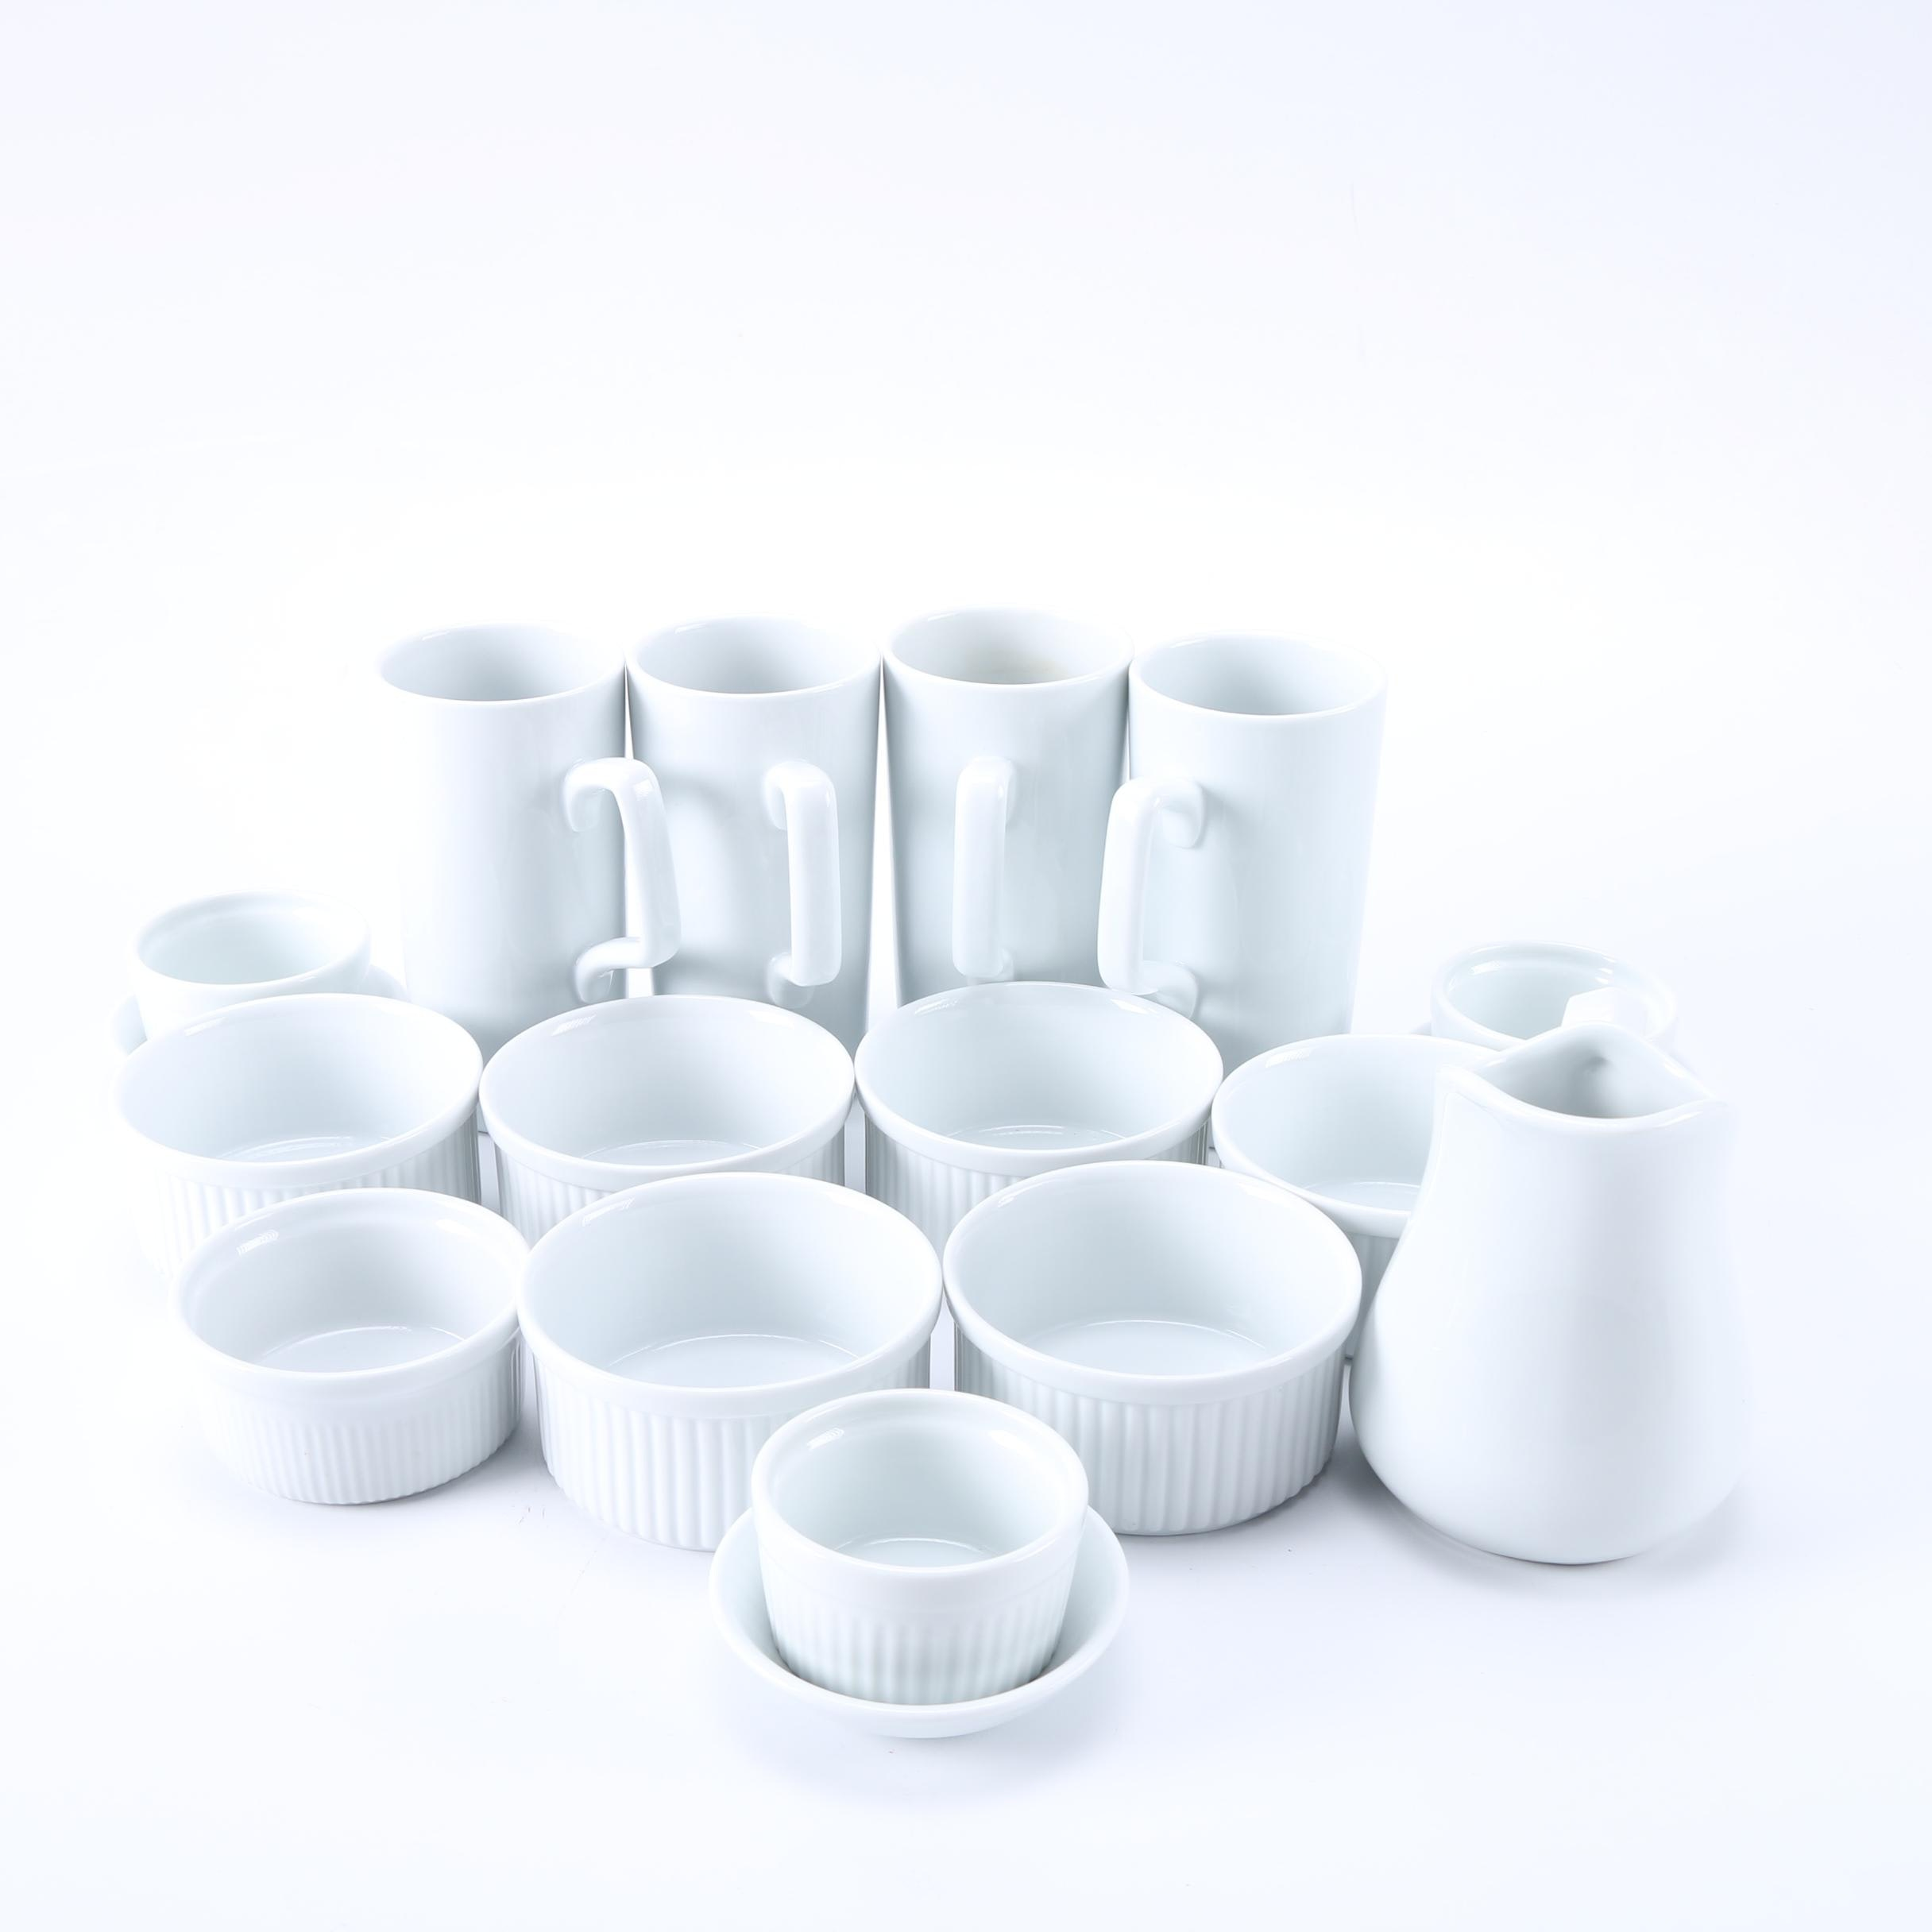 White Ceramic Table and Cookware Including Dansk and Williams-Sonoma